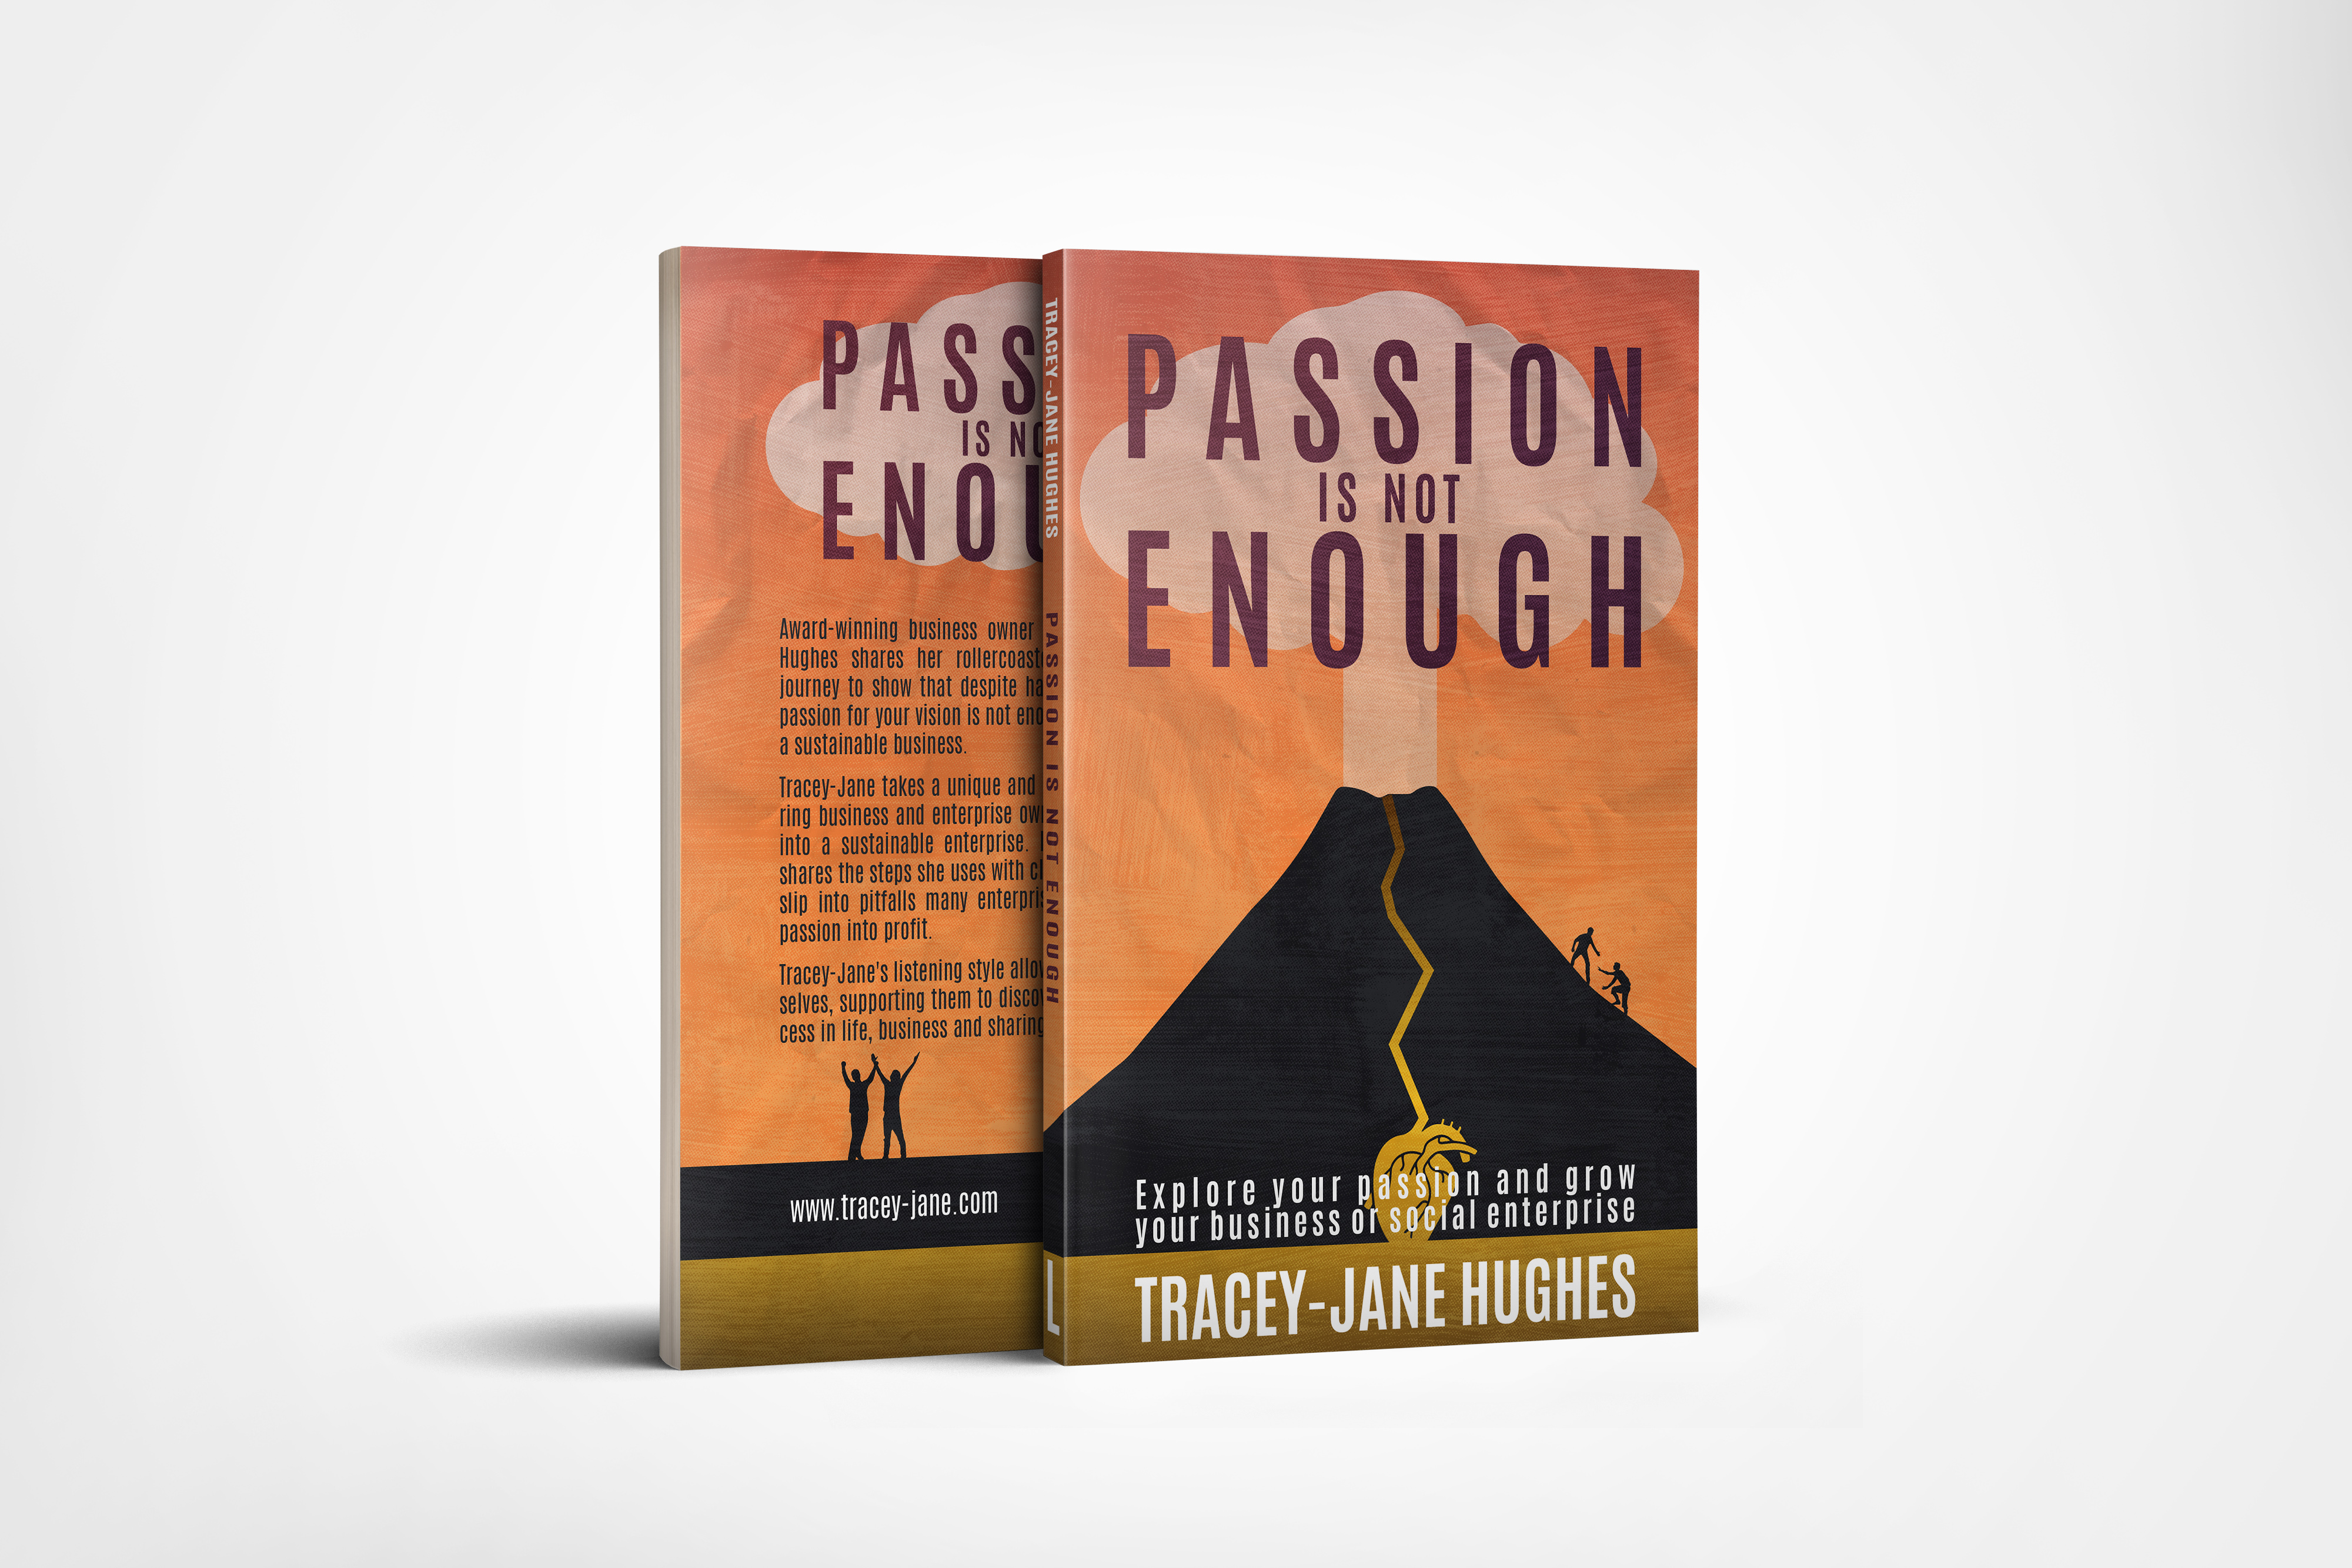 Passion is not enough - Explore your passion and grow your business or social enterprise